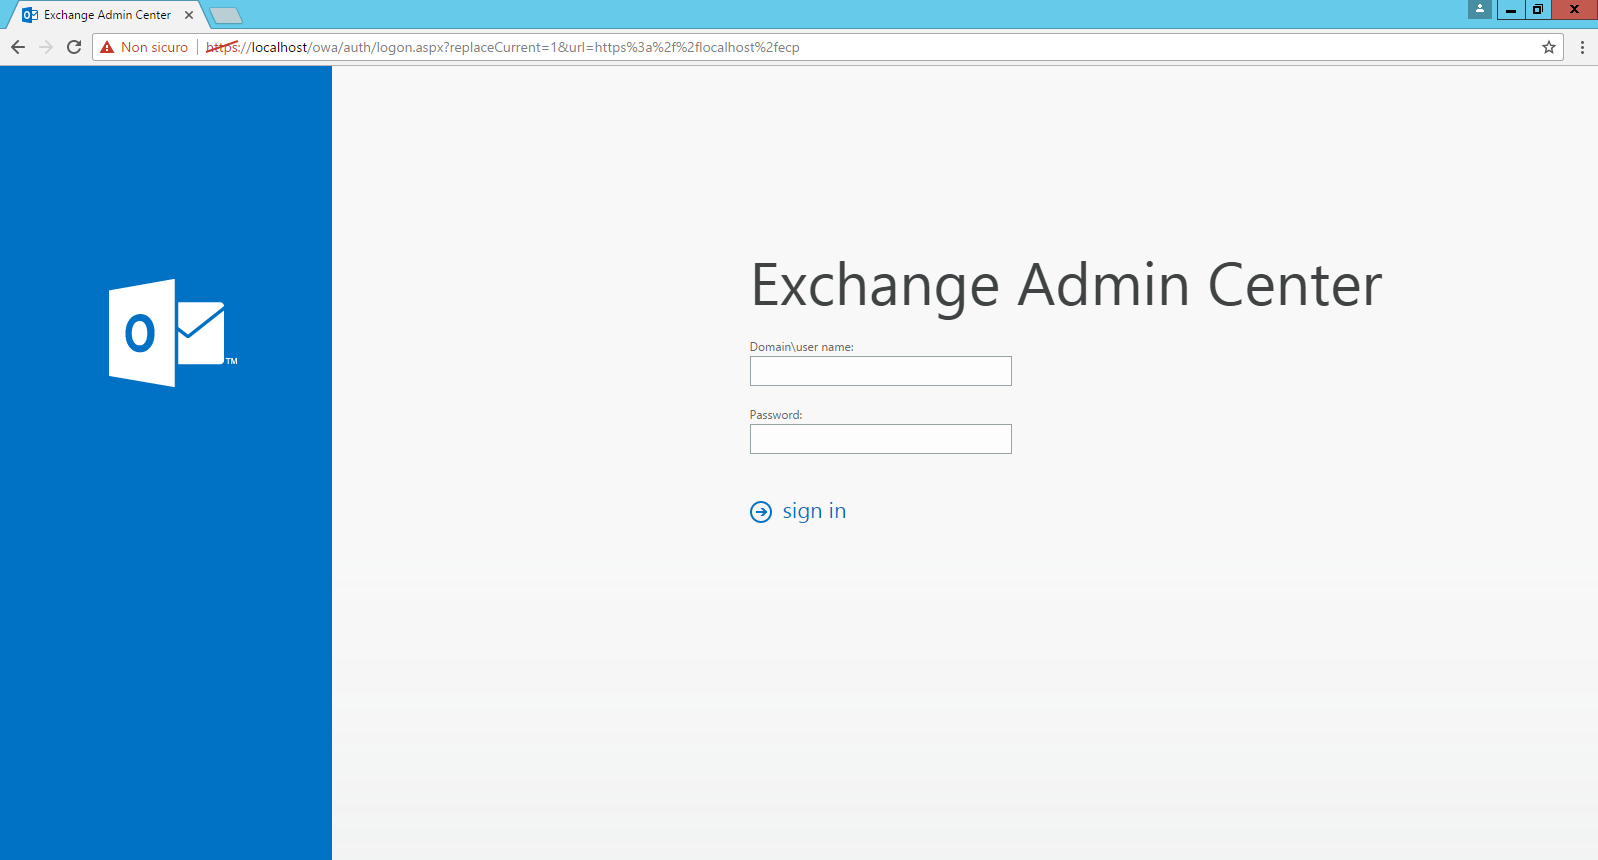 Exchange permissions for mailbox backup (export) and restore